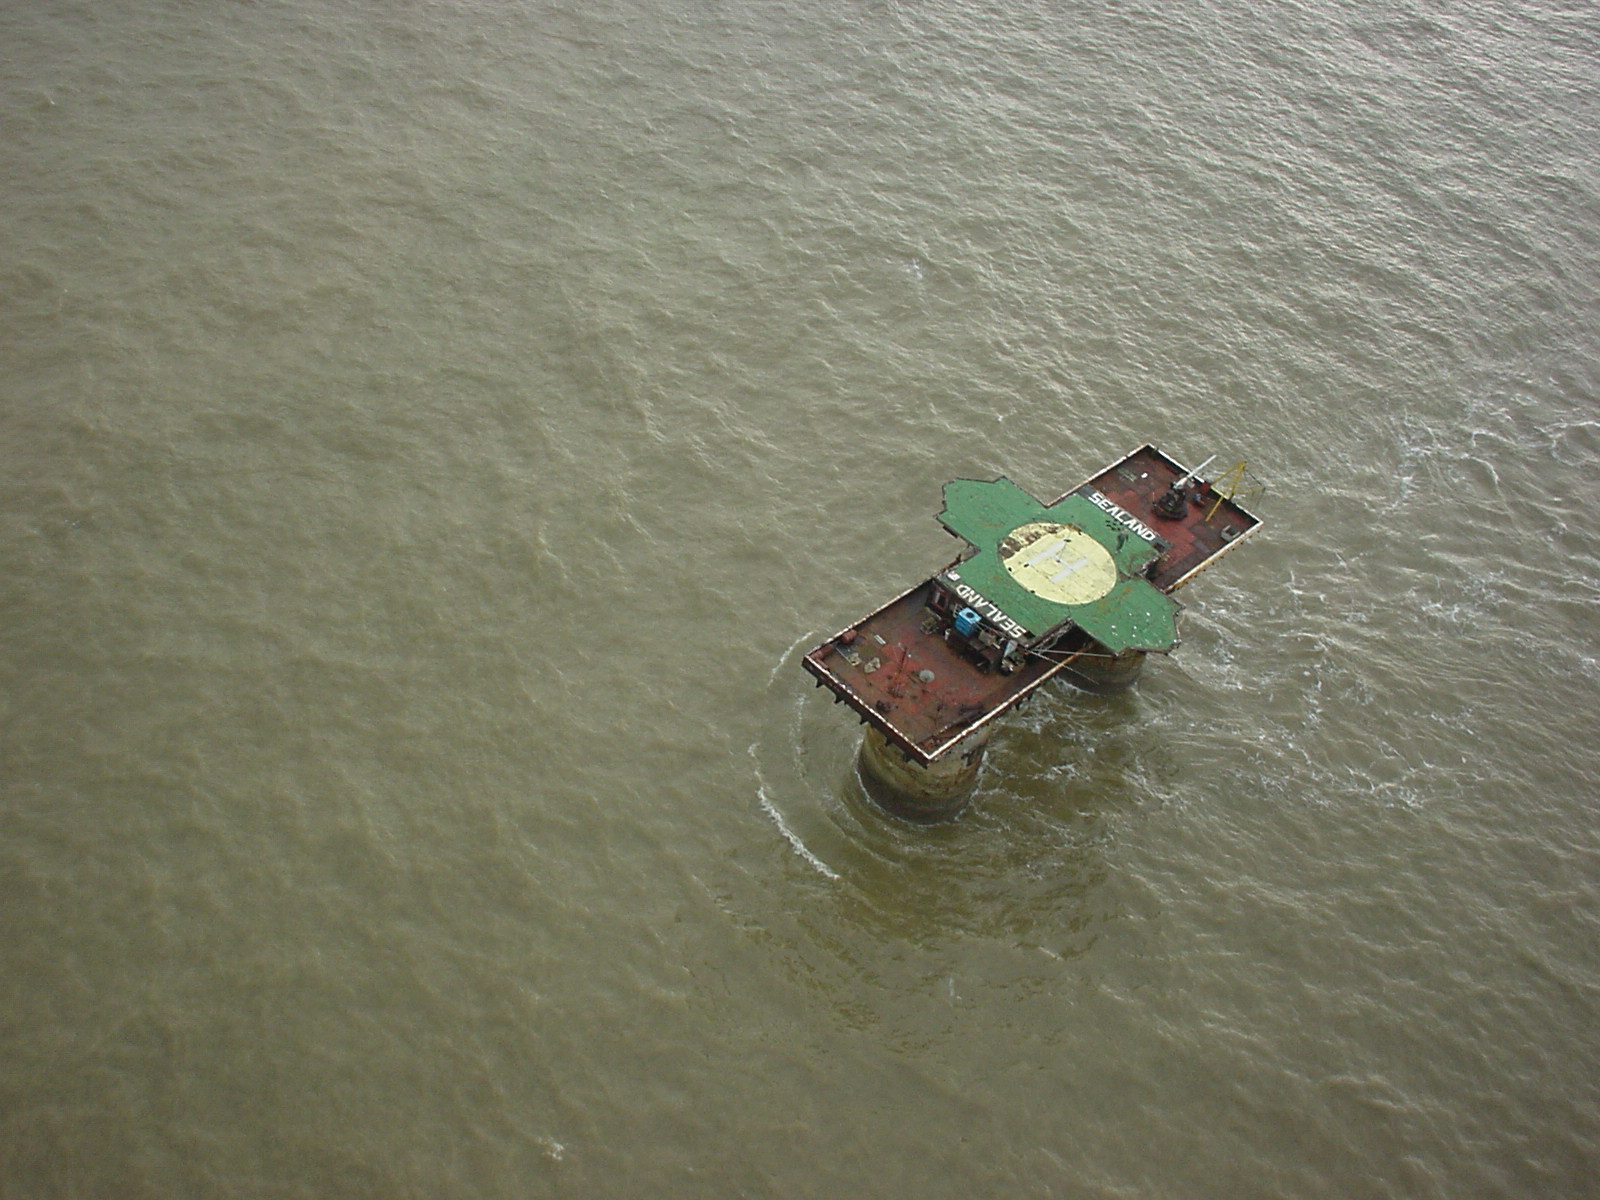 Sealand photographed from a helicopter on November 13, 1999.